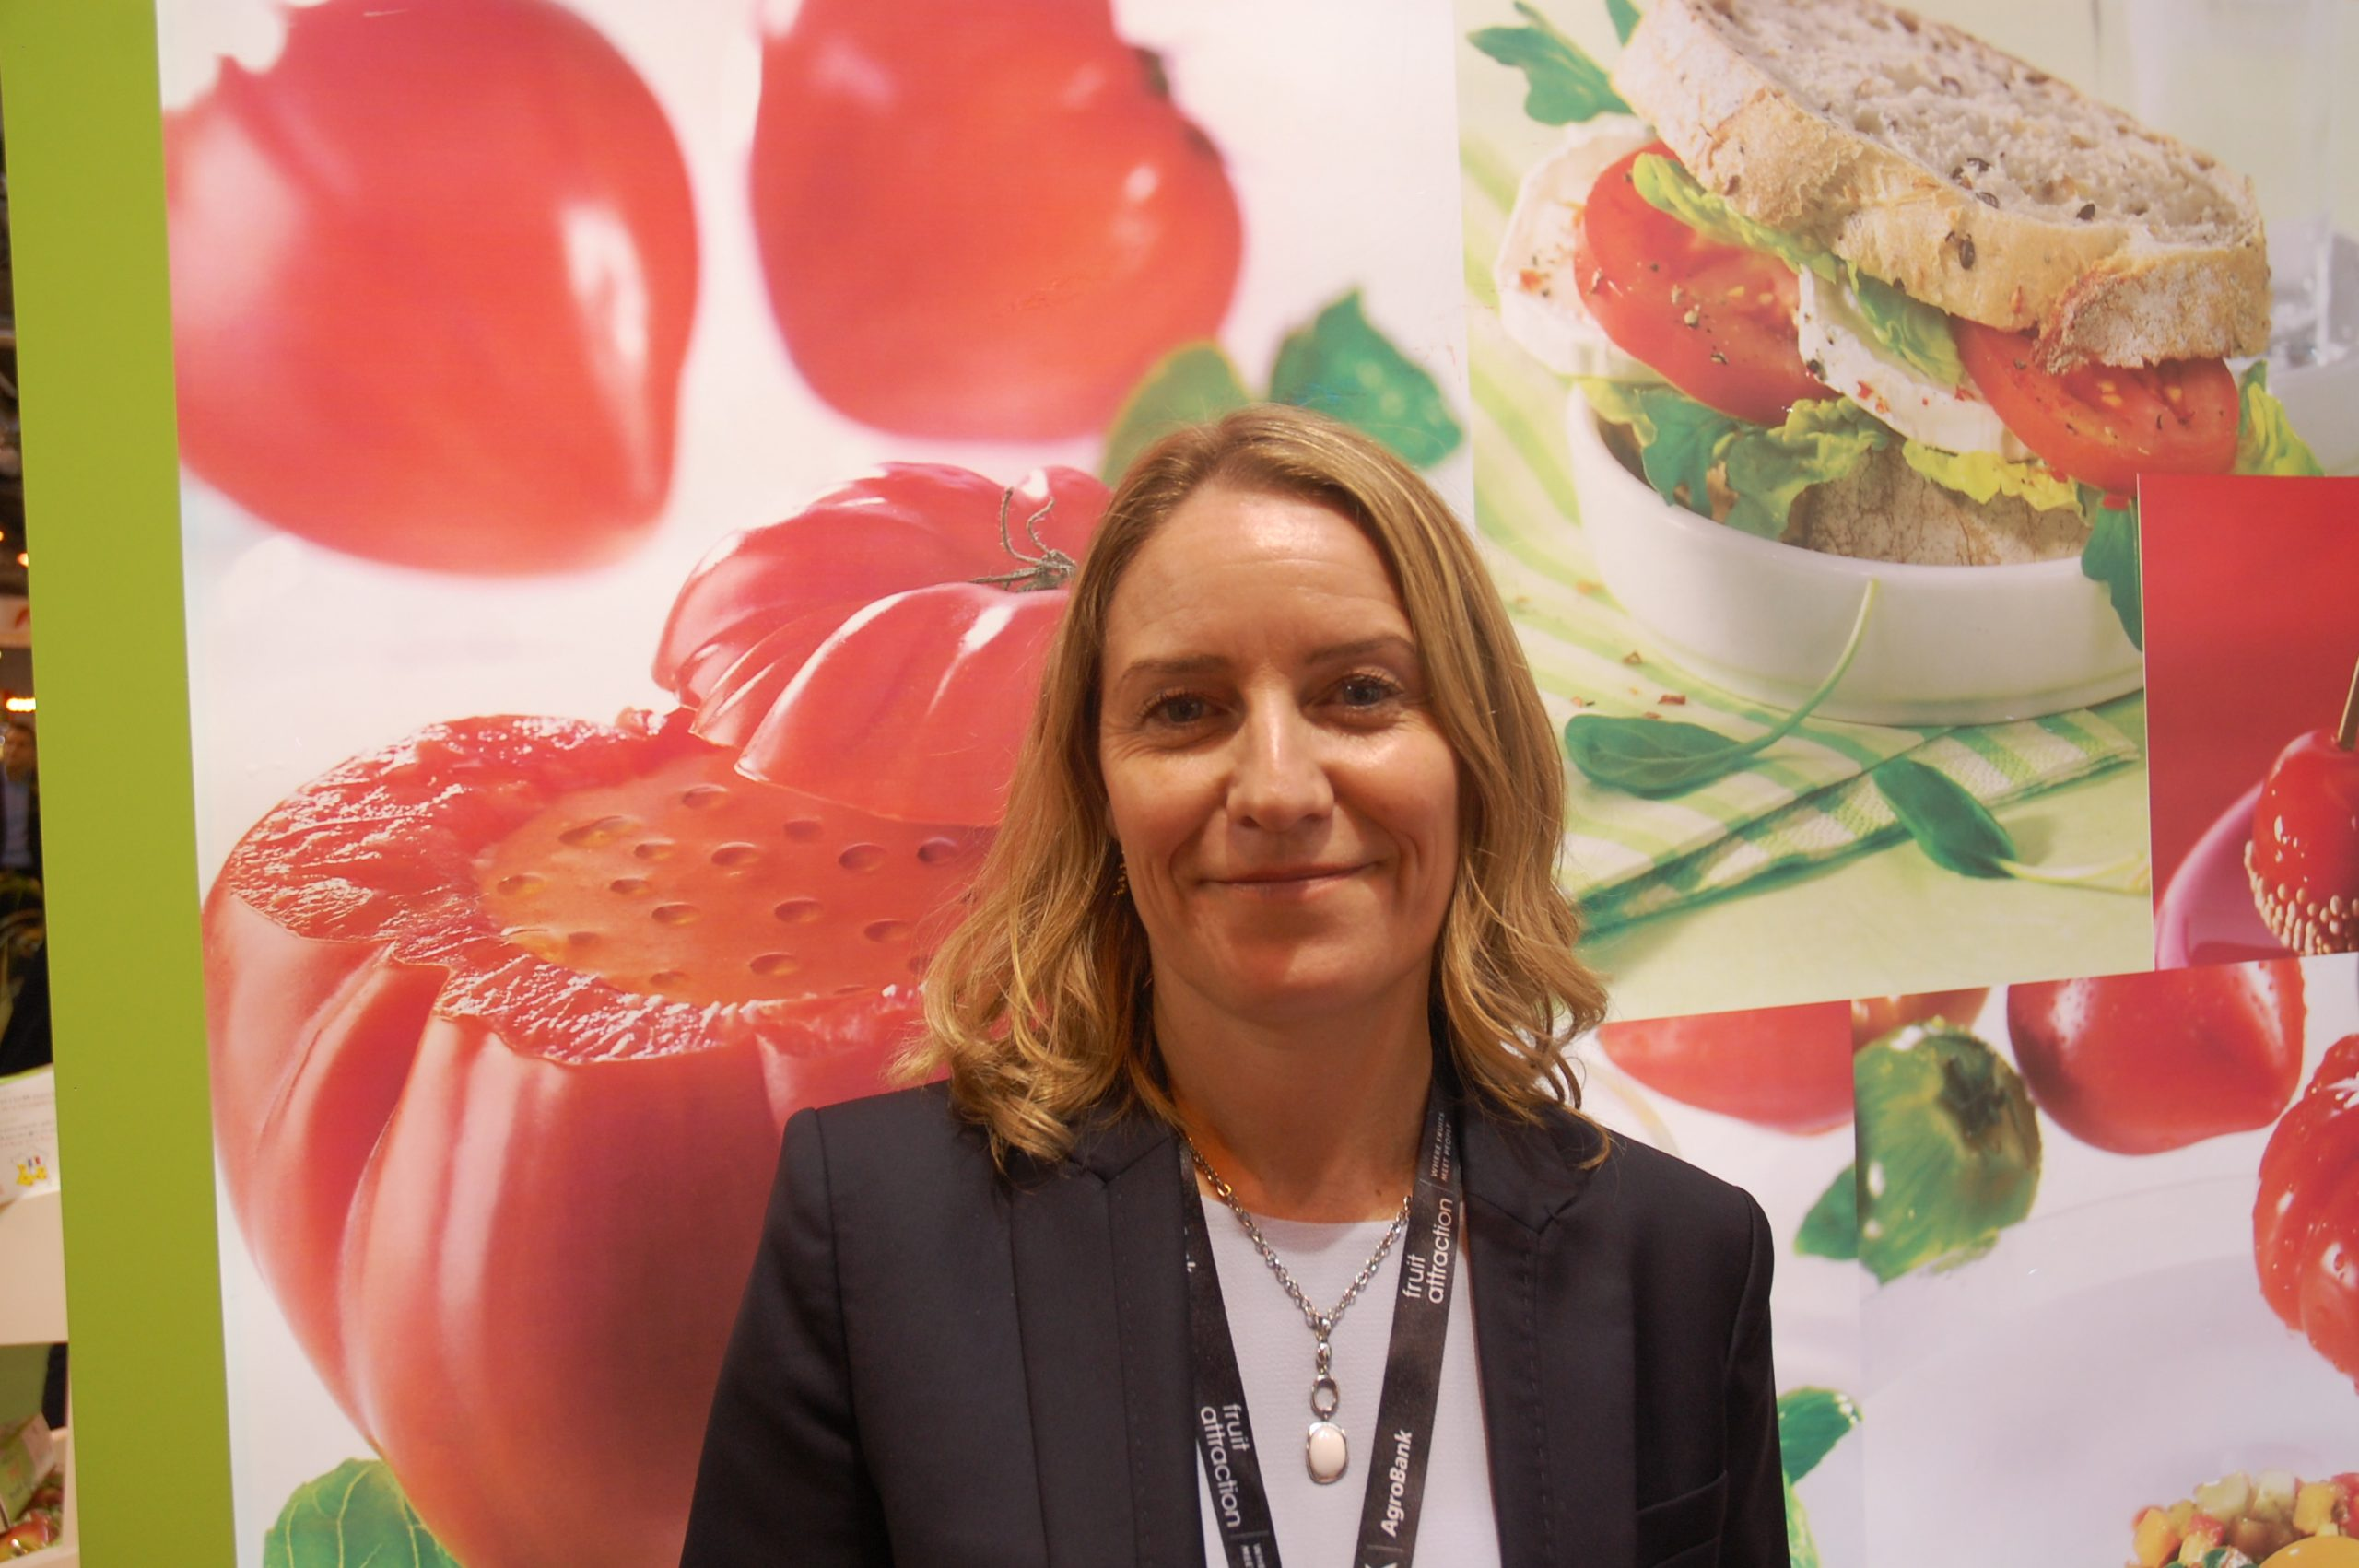 CMO Savéol is offering new types of tomato packs for consumers.CMO Savéol is an agricultural cooperative with its headquarters in France and 130 farmers producing the widest range of tomatoes on the French market.